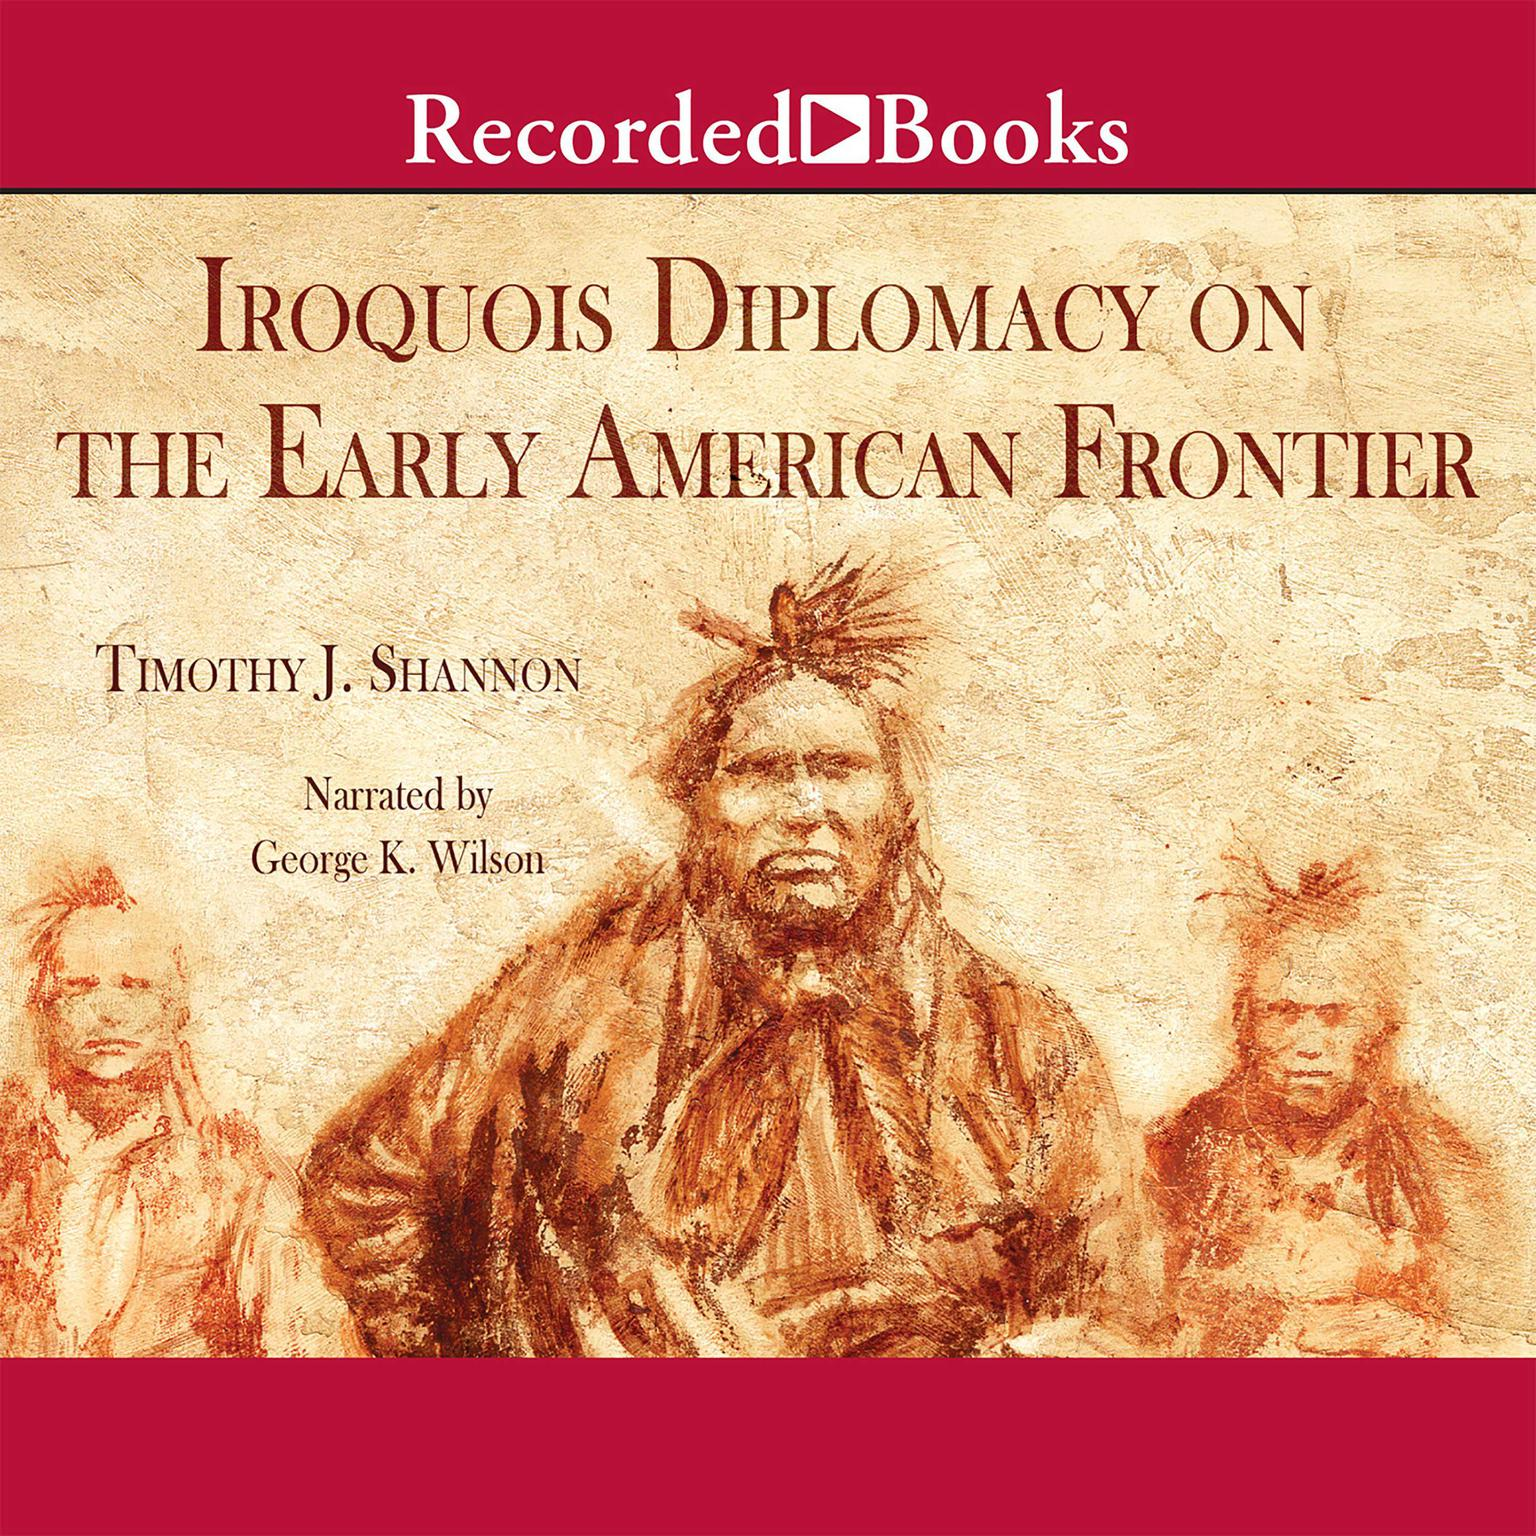 Printable Iroquois and Diplomacy on the Early American Frontier Audiobook Cover Art